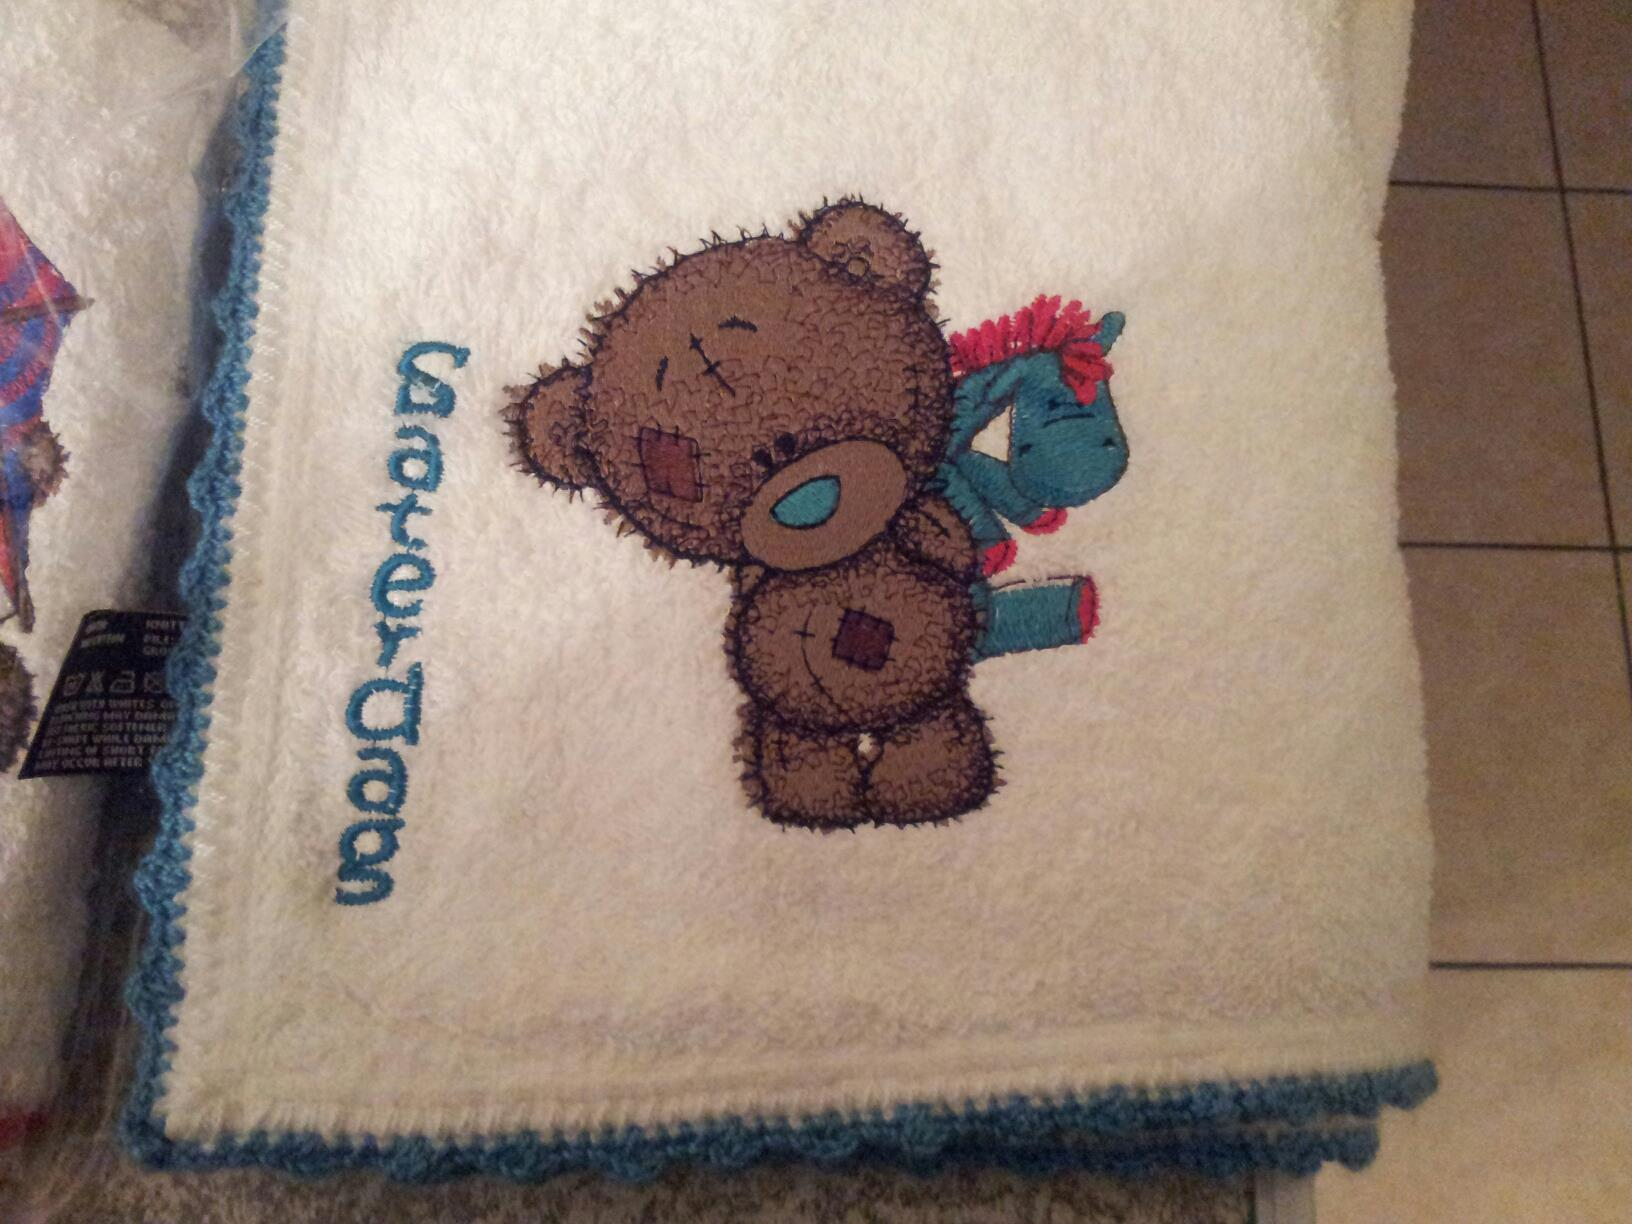 Quilt block with Teddy Baby with toy machine embroidery design